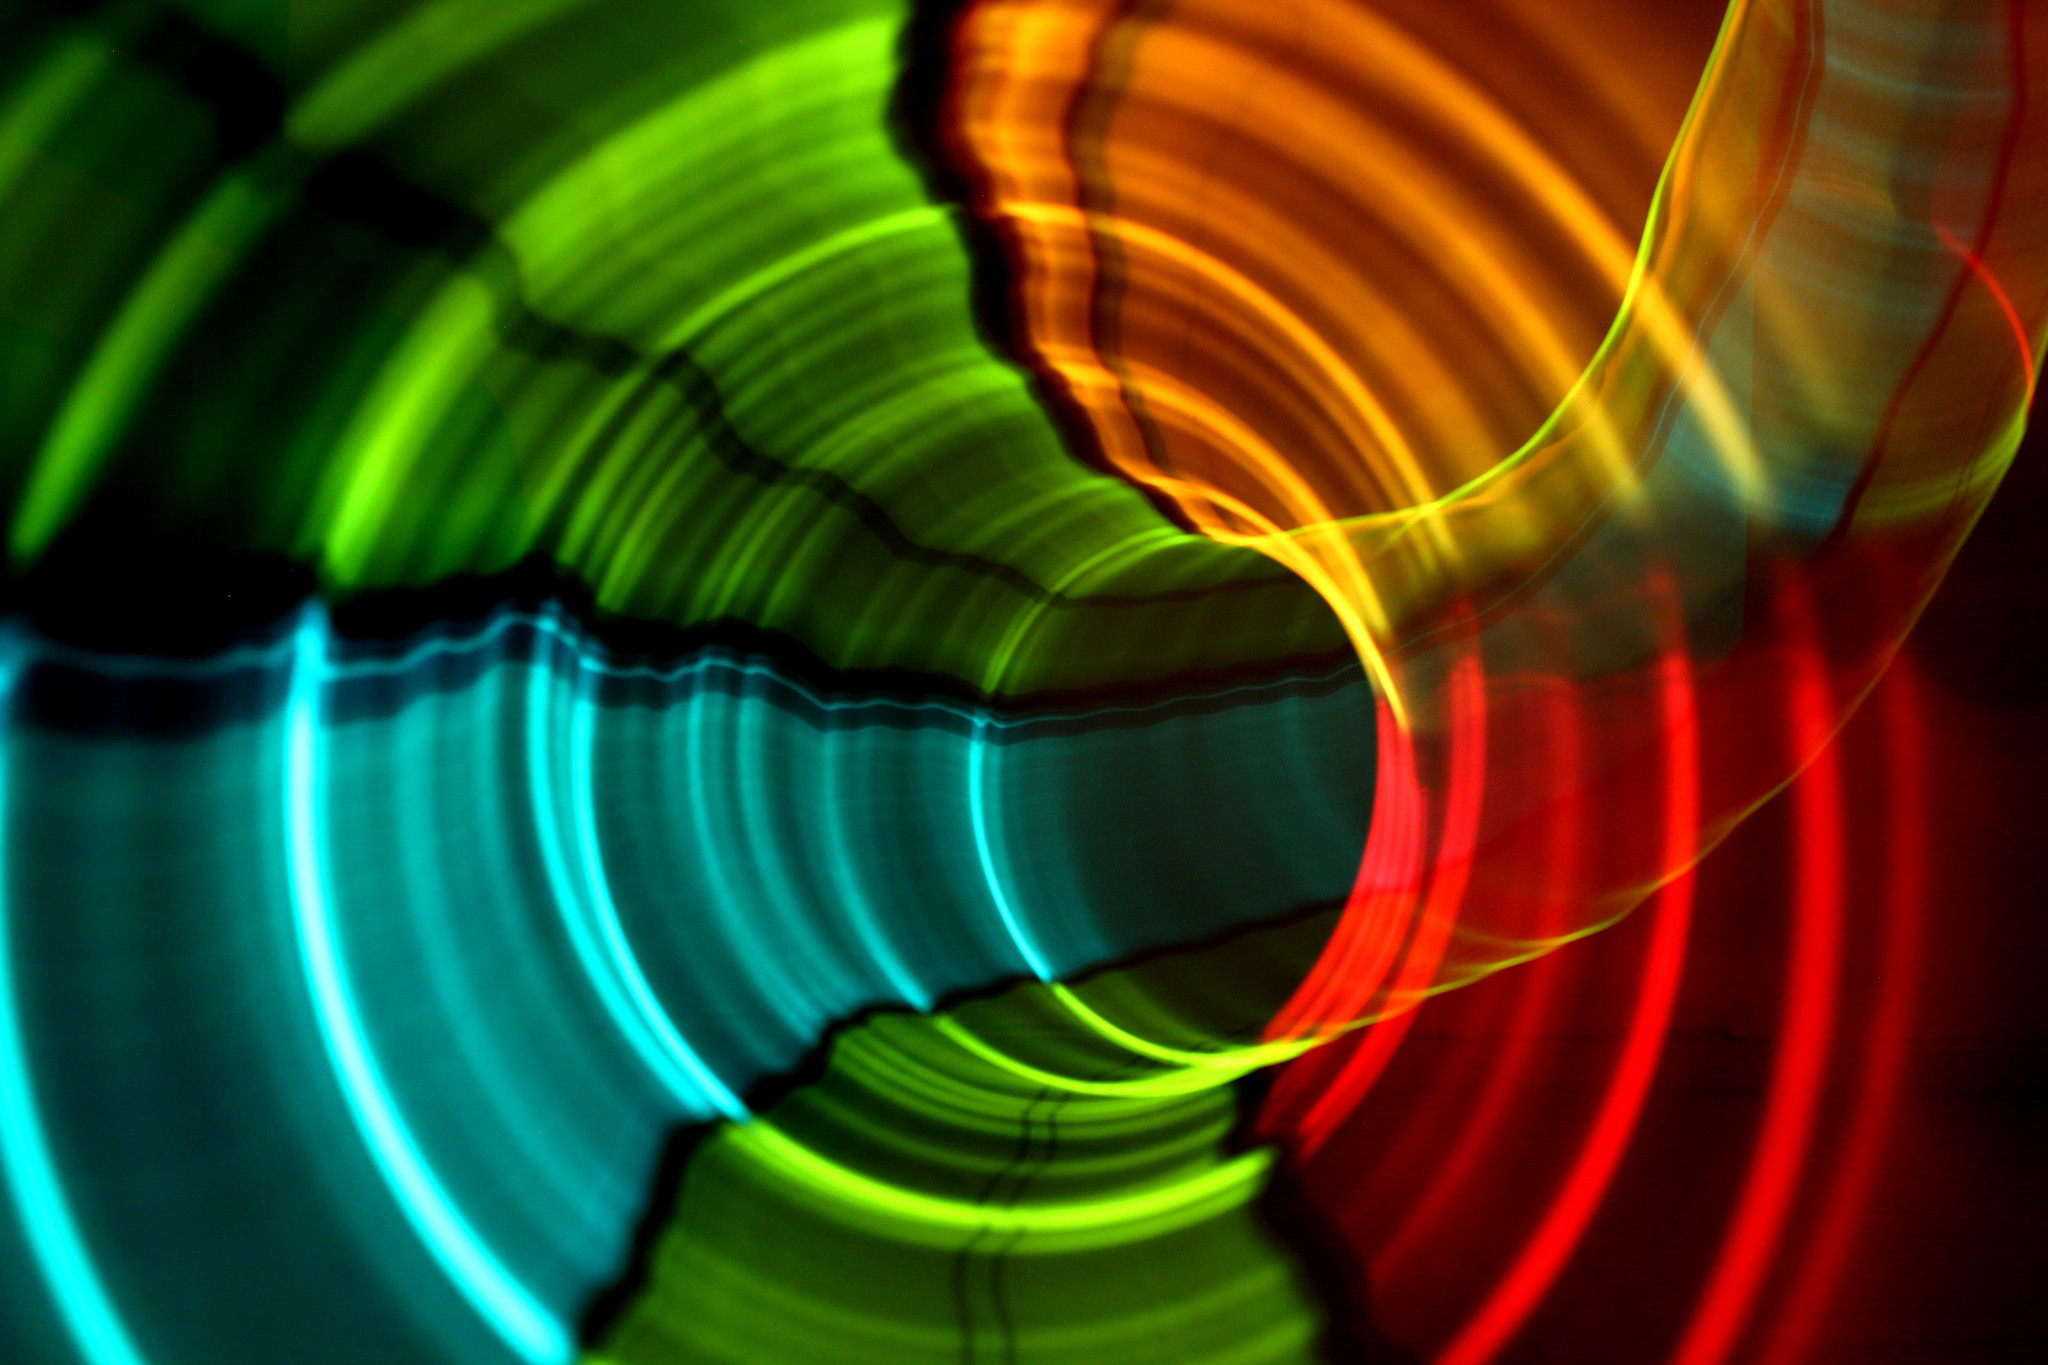 … music wallpaper · free download Colorful Abstract Sound Wave Art HD  wallpaper